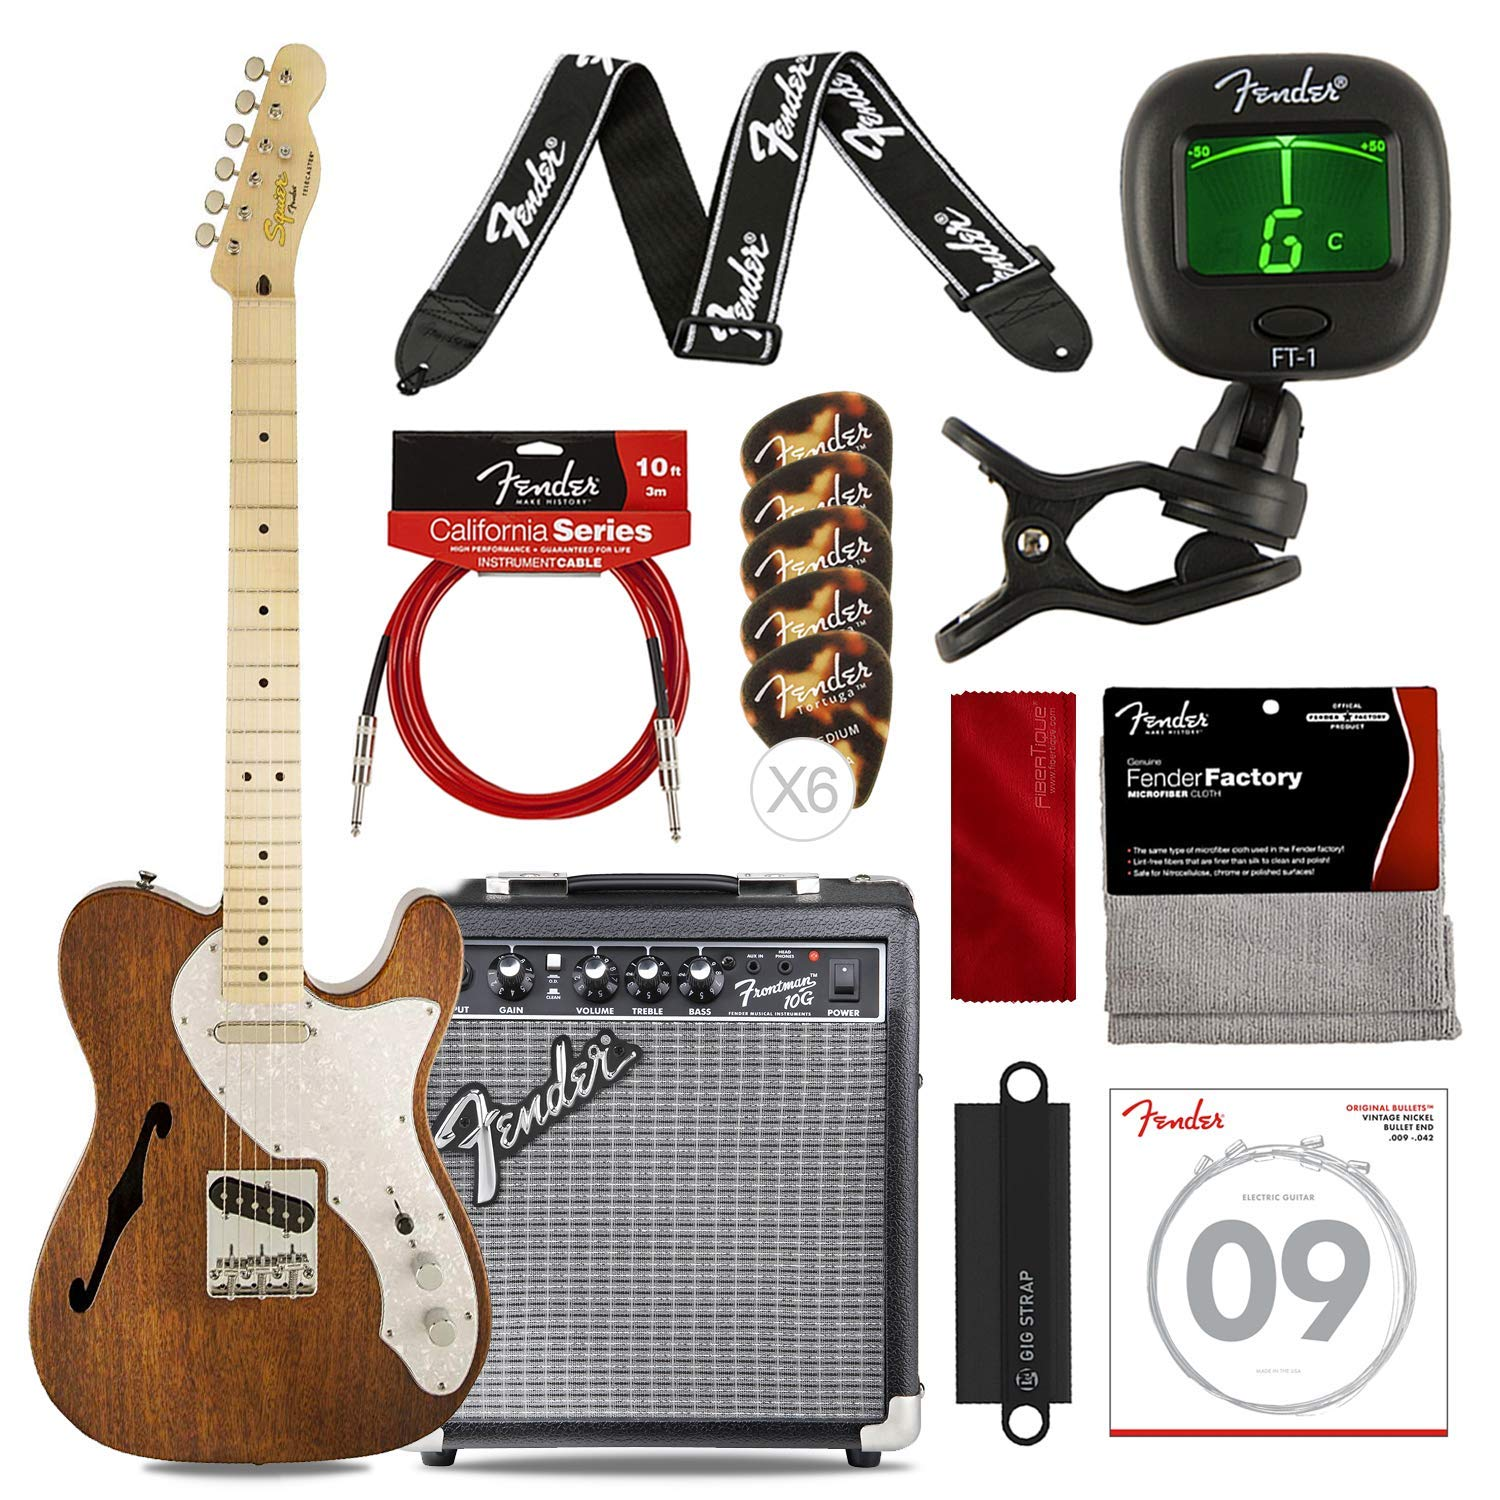 Squier by Fender Classic Vibe Telecaster Guitarra eléctrica ...